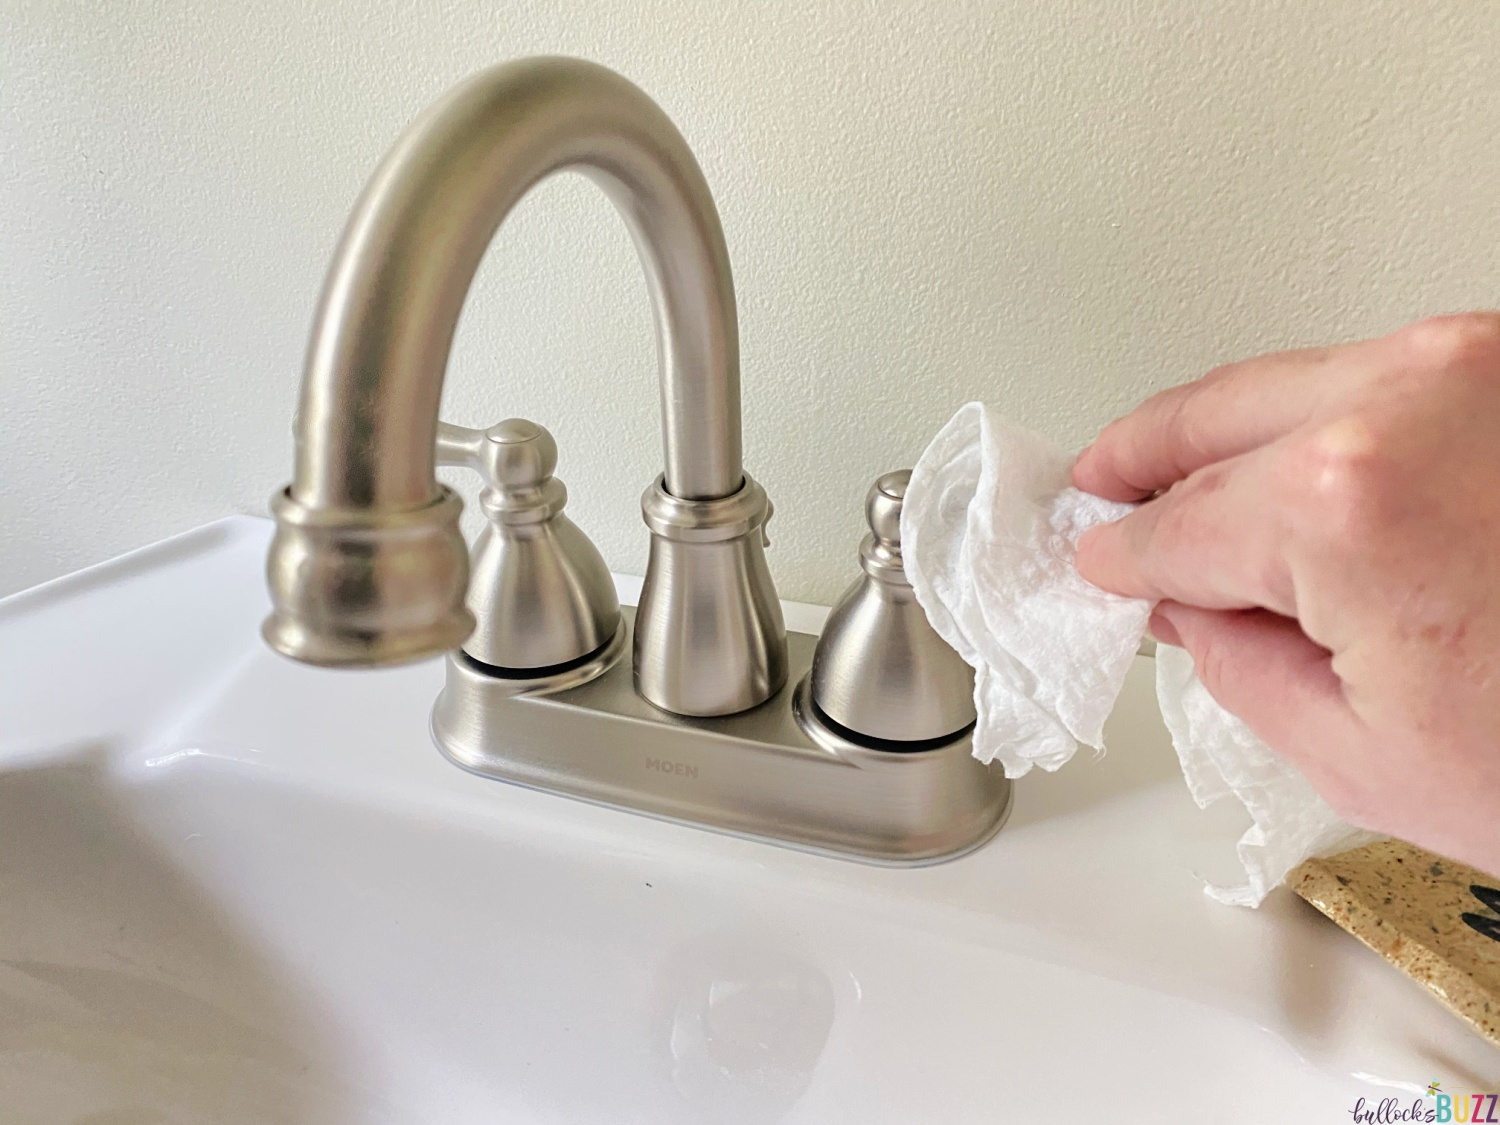 cleaning faucet with Arm and Hammer Essentials Disinfecting Wipes as part of weekly cleaning schedule